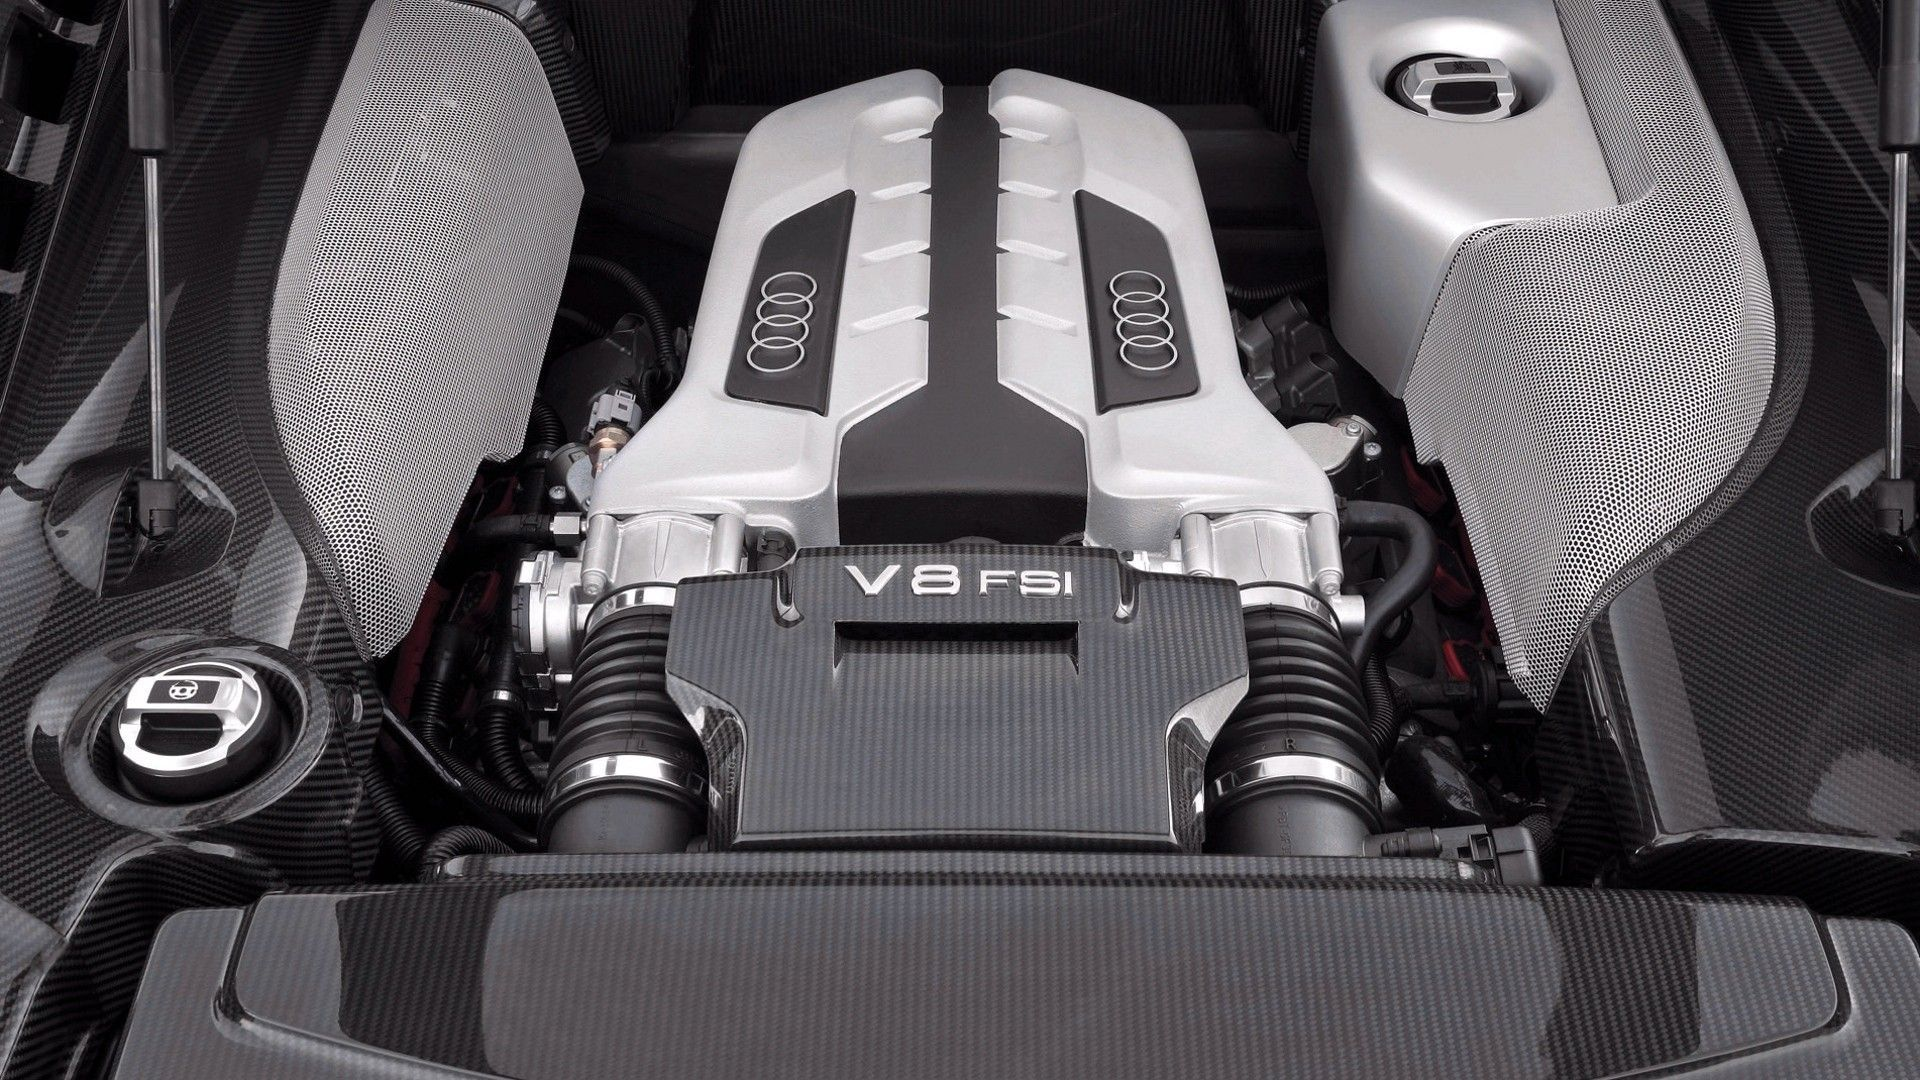 Used Audi A6 Engine For Sale Used Audi Engines For Sale Audi